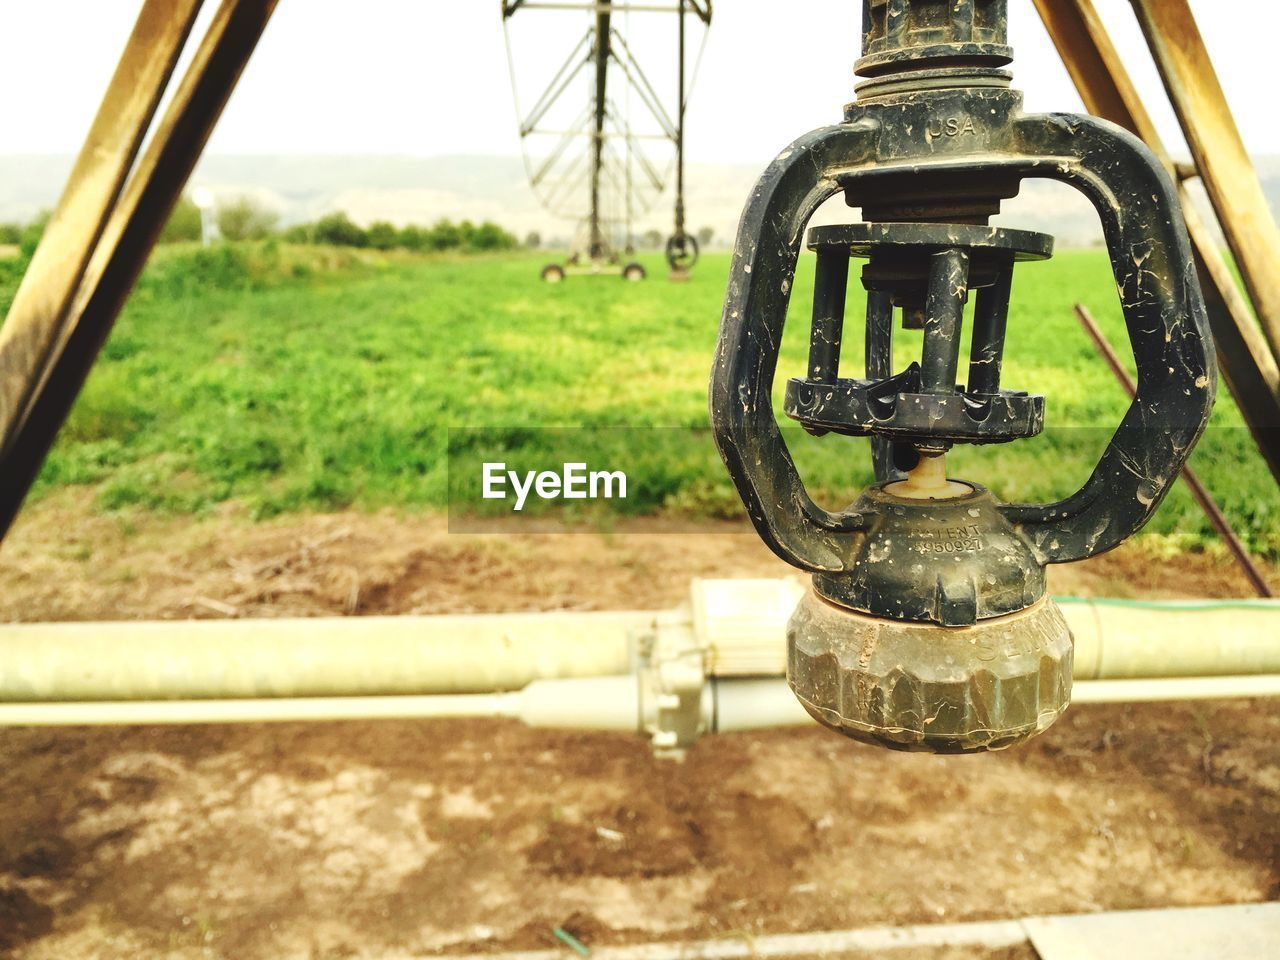 metal, day, no people, wheel, focus on foreground, close-up, outdoors, pipe - tube, valve, irrigation equipment